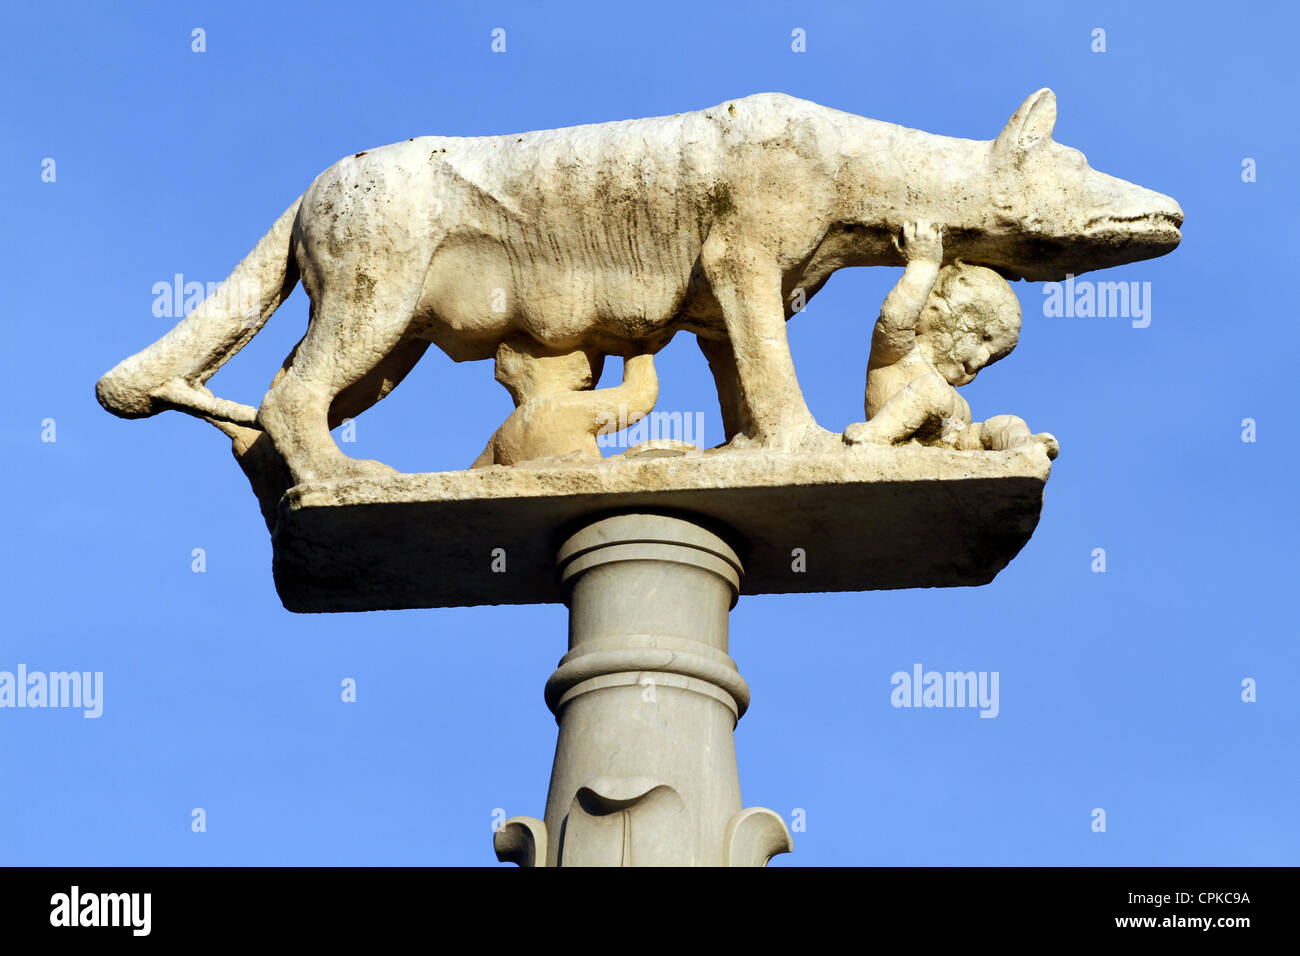 STATUE OF SHE-WOLF WITH ROMULUS & REMUS CATHEDRAL SIENA TUSCANY ITALY 10 May 2012 - Stock Image